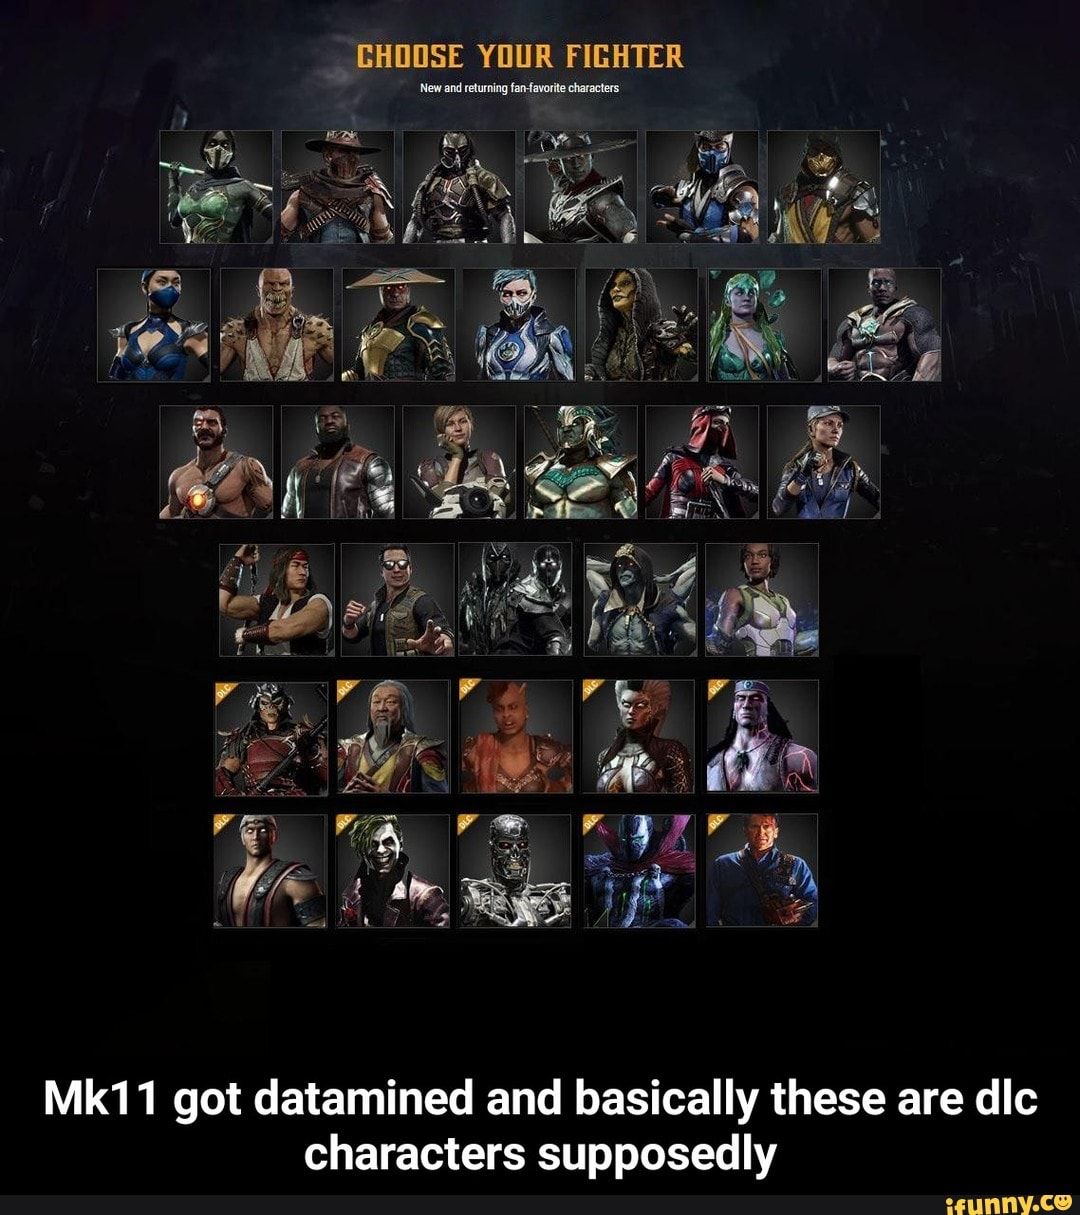 Mk11 got datamined and basically these are dlc characters